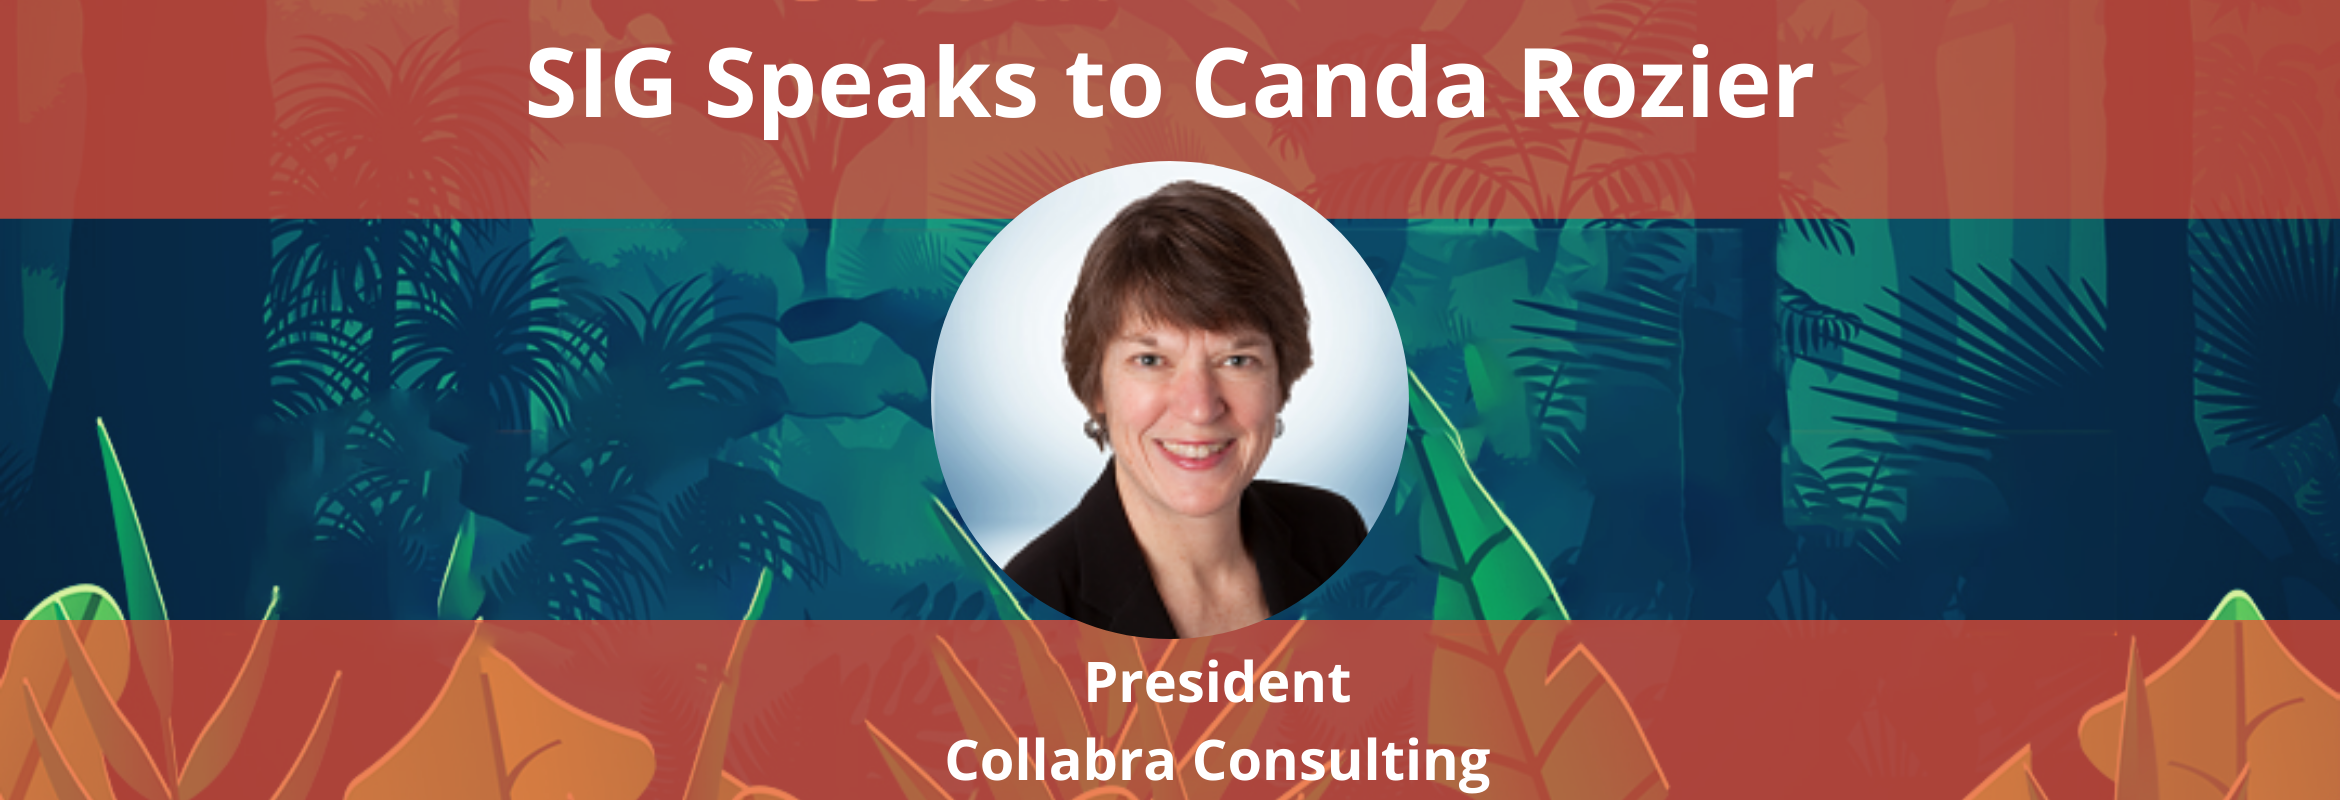 Canda Rozier is the Owner/President at Collabra Consulting